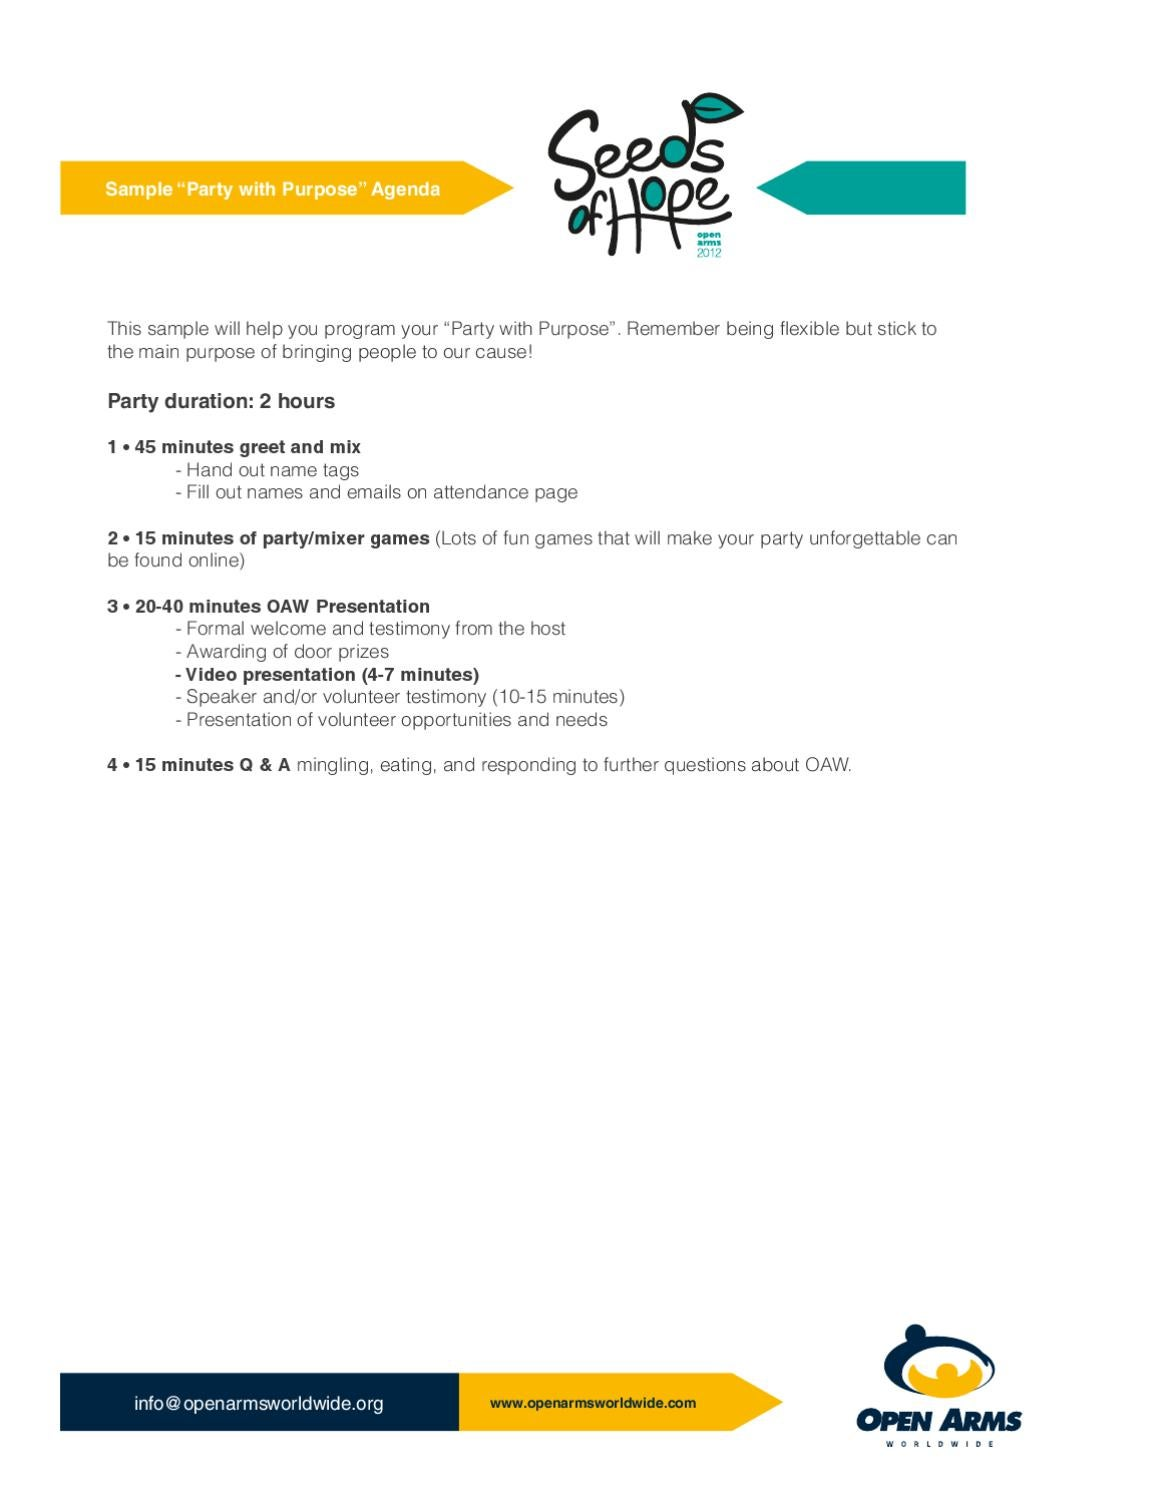 Party Agenda Model by Open Arms Worldwide - issuu